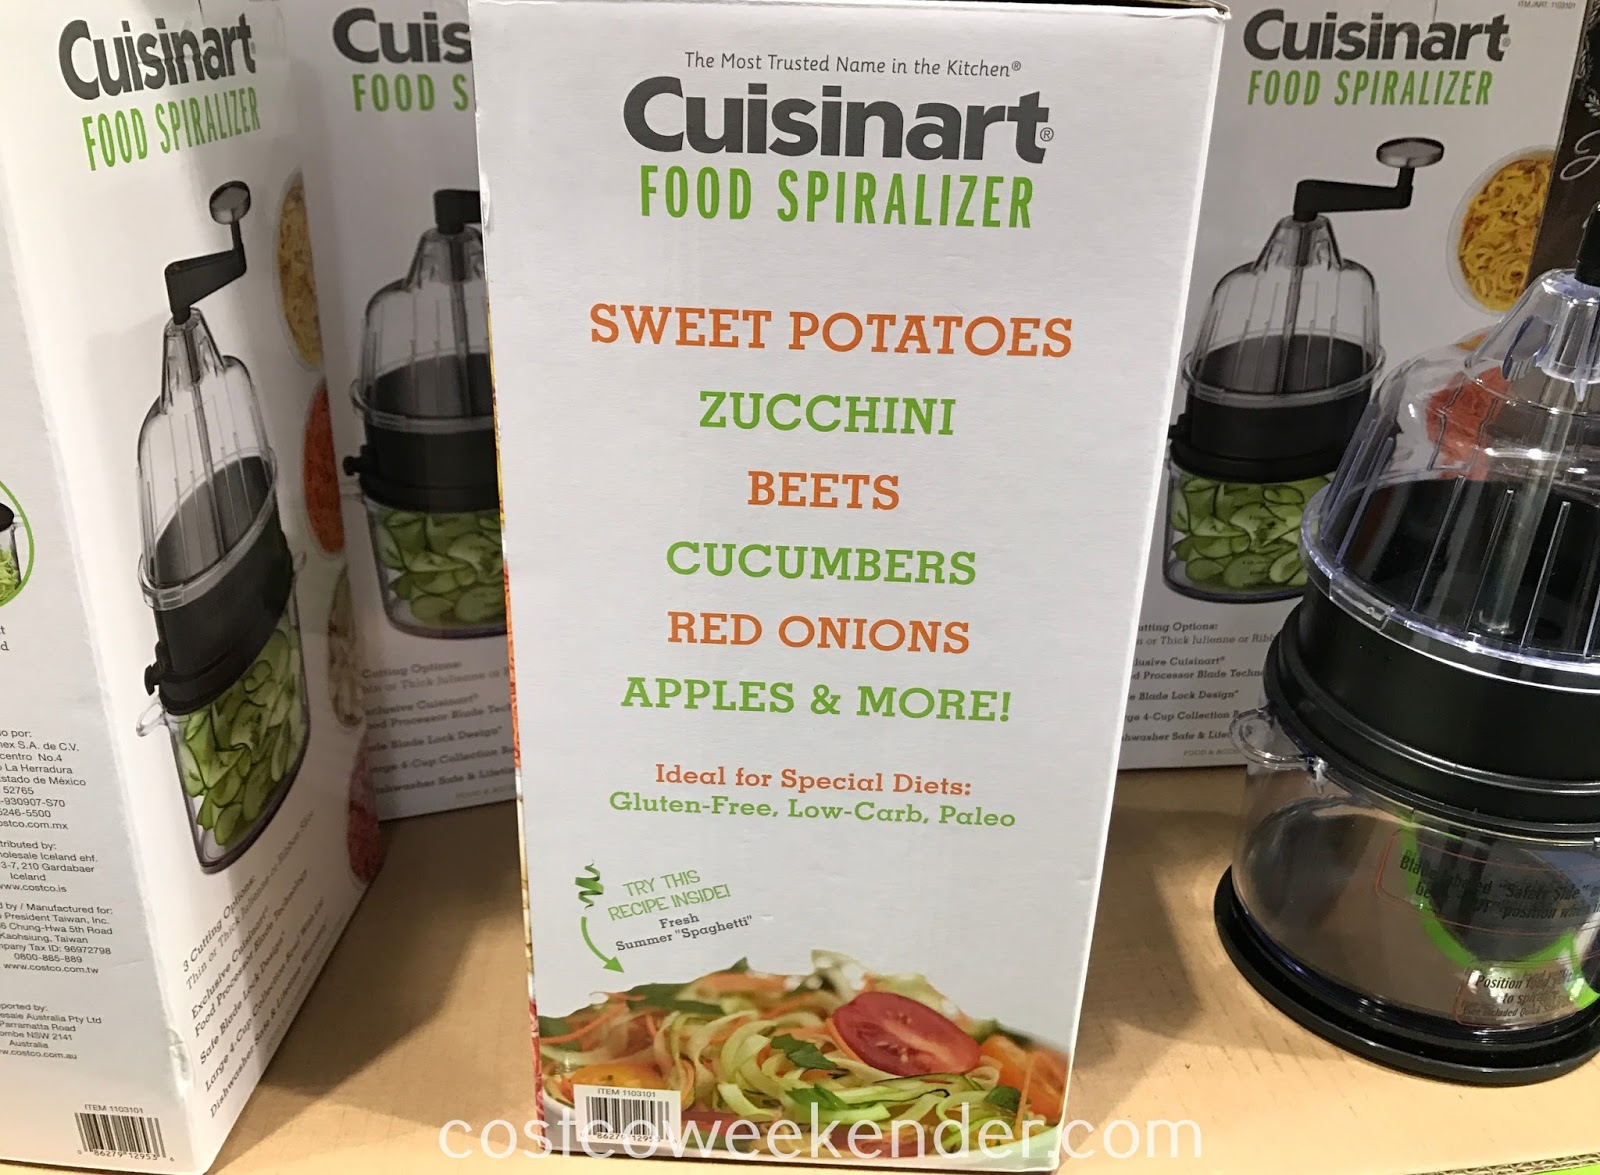 Ensure your kitchen has the right tools with the Cuisinart Food Spiralizer